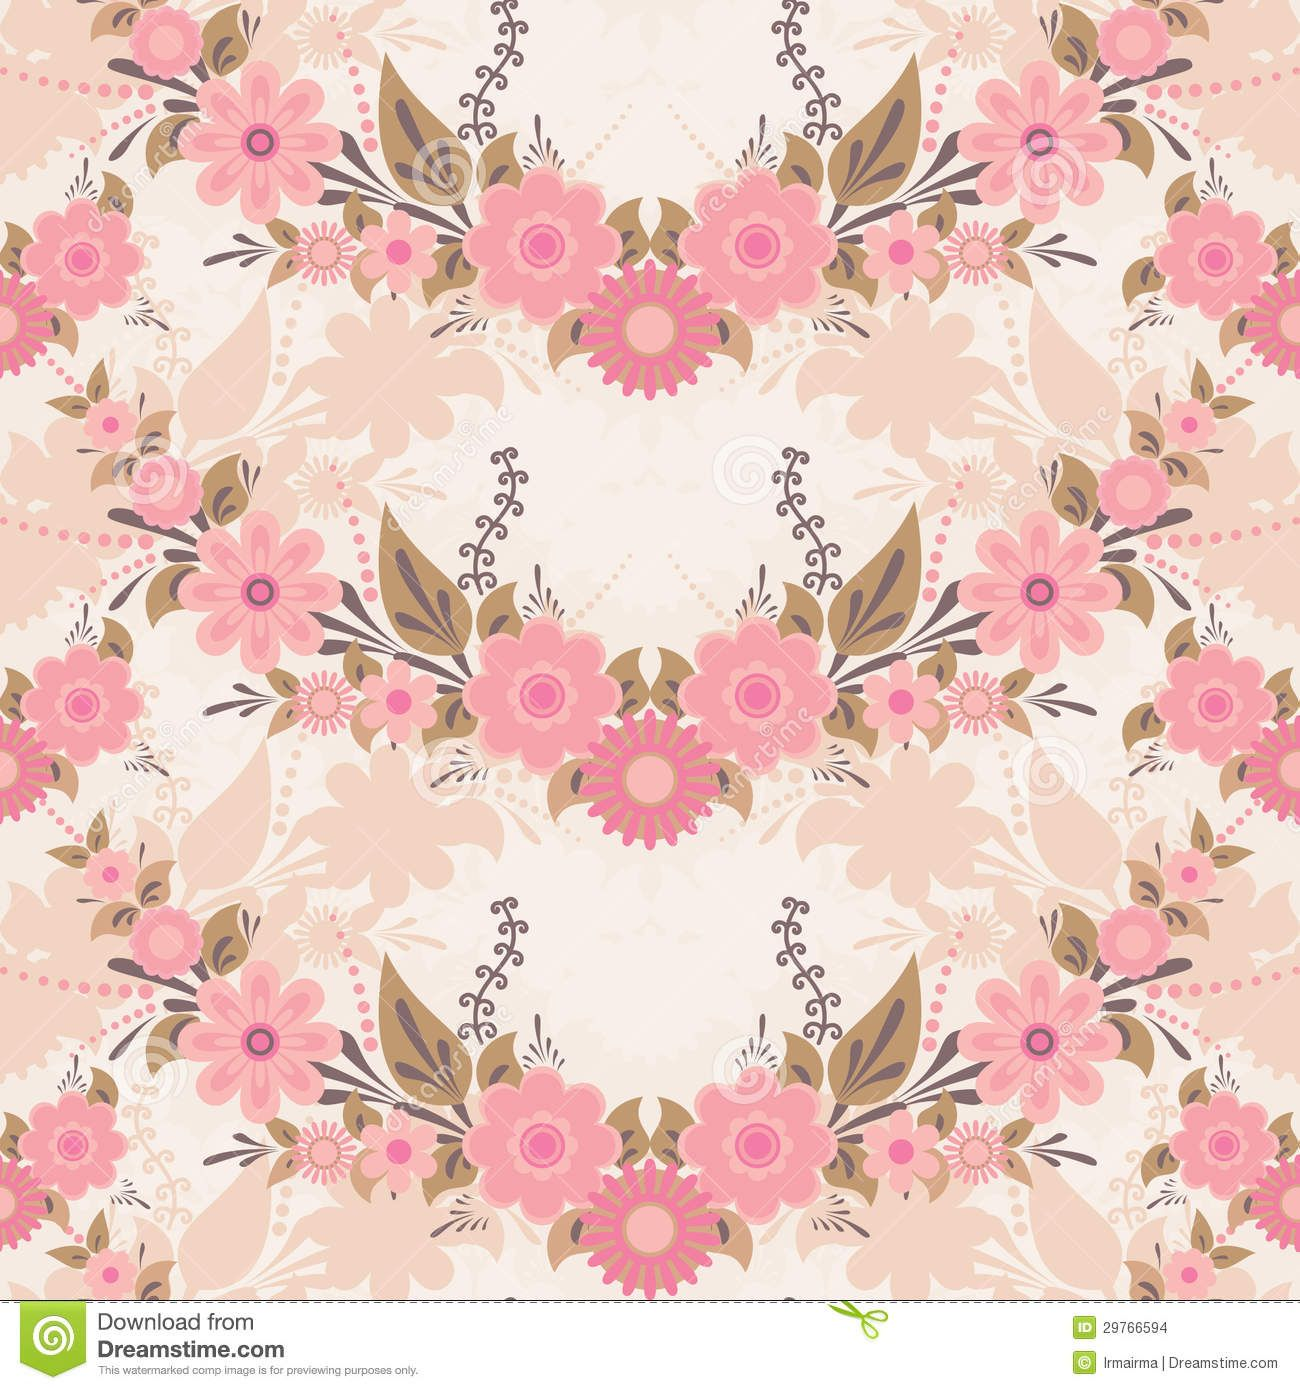 Top Wallpaper Home Screen Vintage - 4c5ffd5647e425943134a24cb18f438f  Best Photo Reference_491117.jpg